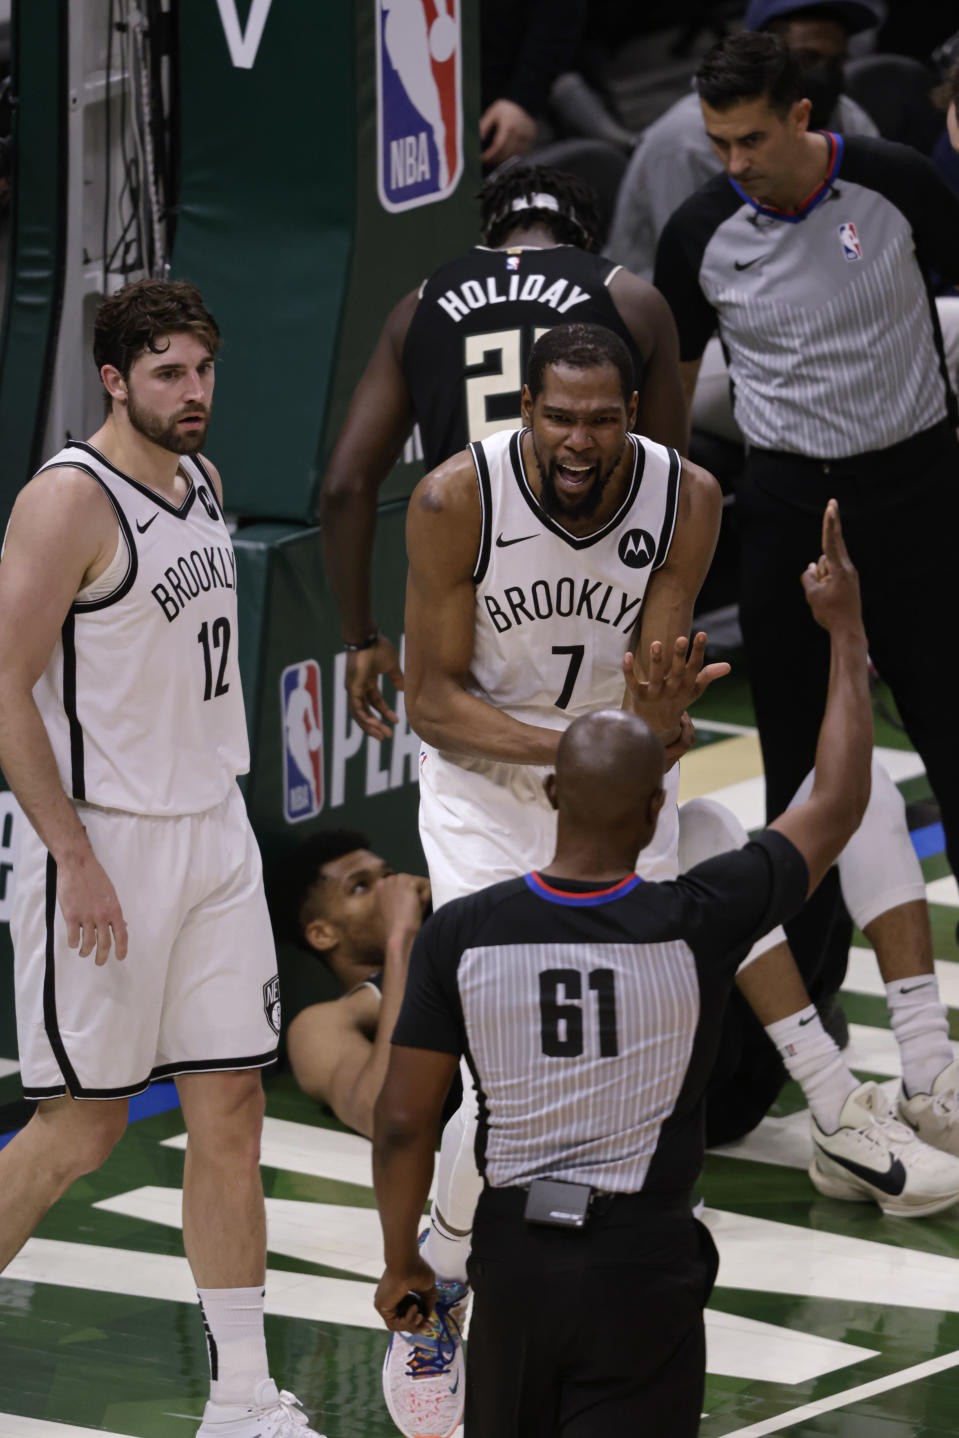 Brooklyn Nets forward Kevin Durant (7) argues a call against him during the second half of Game 6 of the team's second-round NBA basketball playoff series against the Milwaukee Bucks on Thursday, June 17, 2021, in Milwaukee. (AP Photo/Jeffrey Phelps)